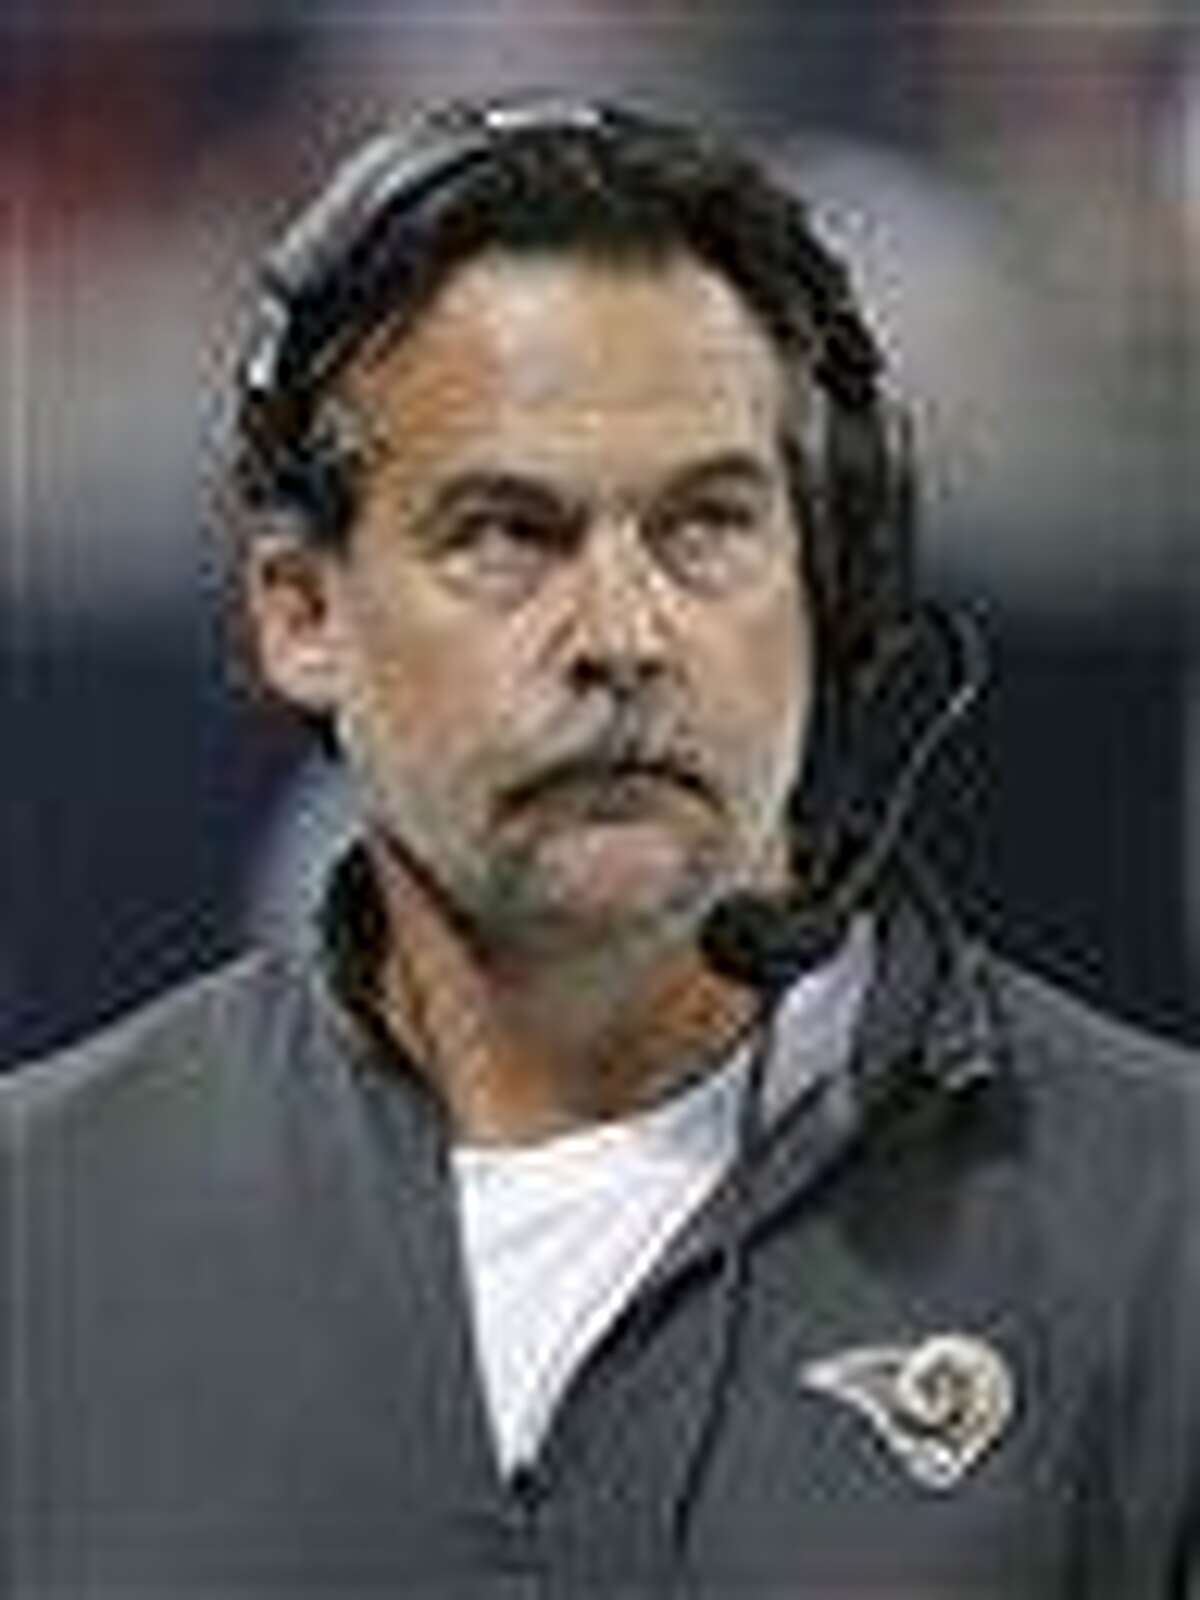 St. Louis Rams coach Jeff Fisher takes a look at the scoreboard during the second half of an NFL football game against the Seattle Seahawks Sunday. Note the mustache. AP Photo